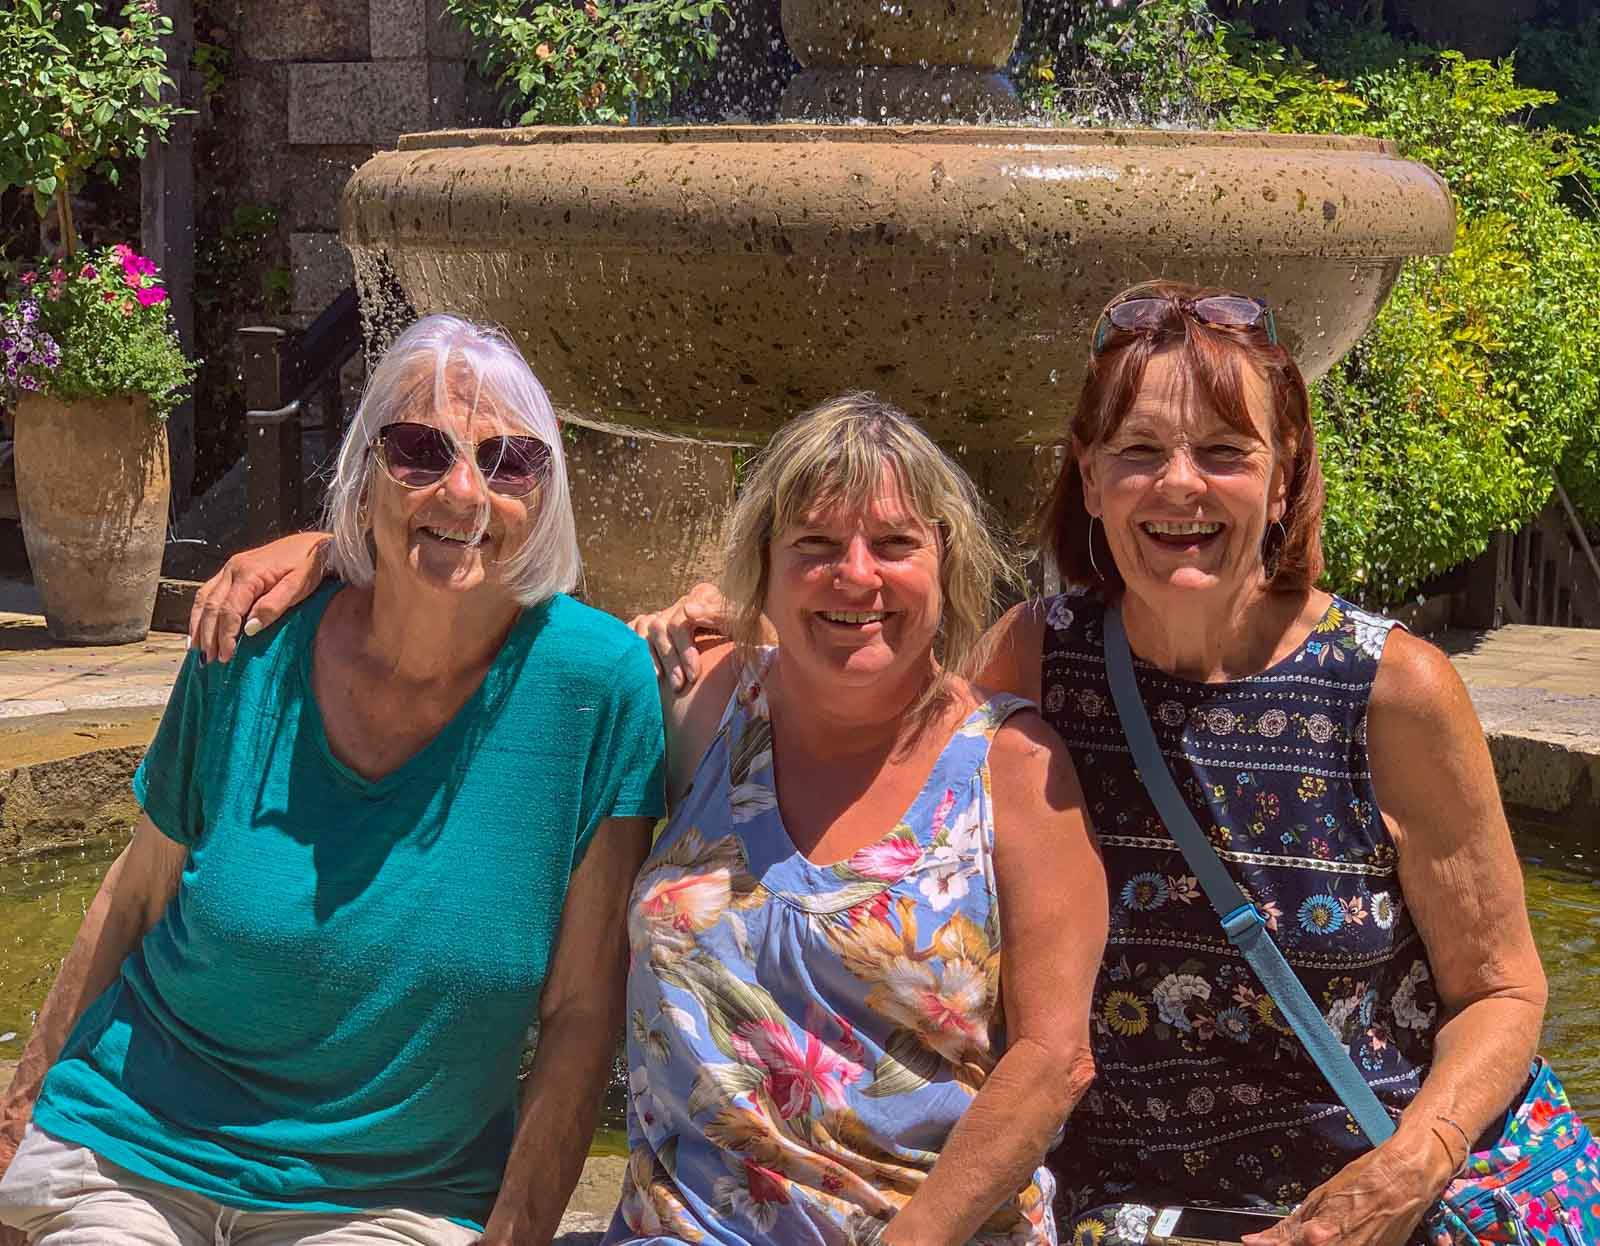 New friends Linda and Cindy